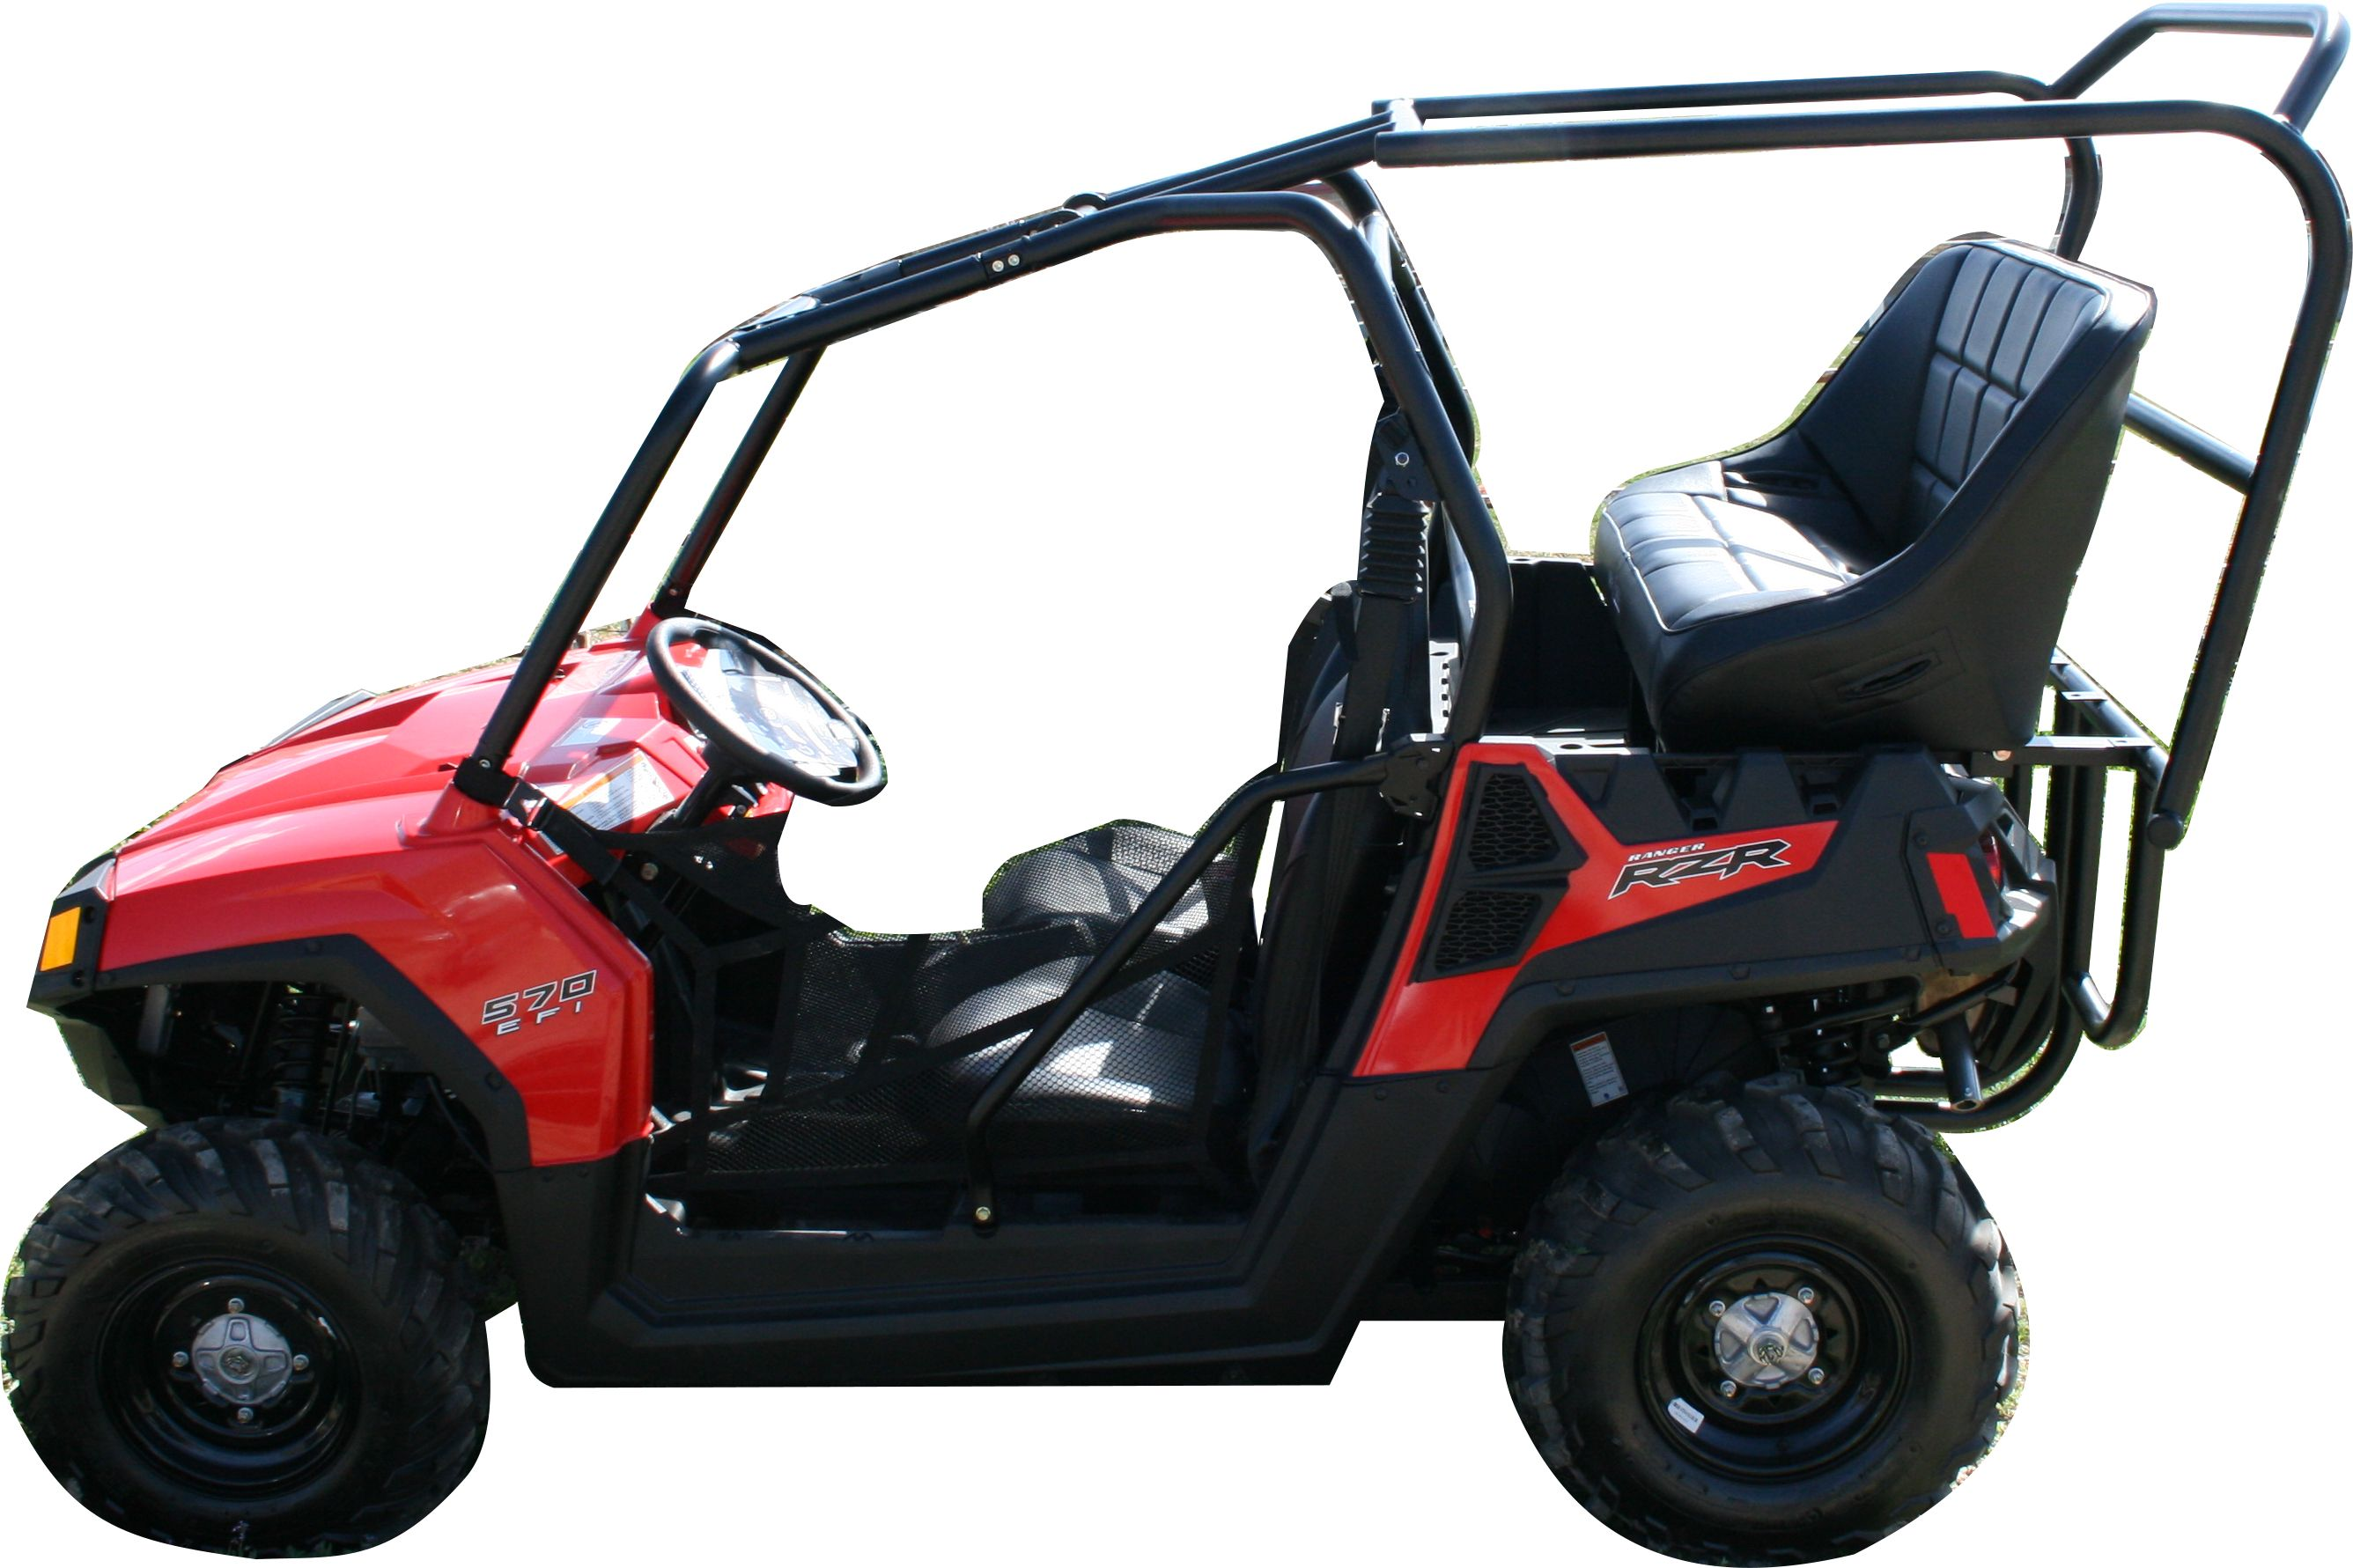 Siorfi UTV designed our the Polaris RZR 570 to e in and out in